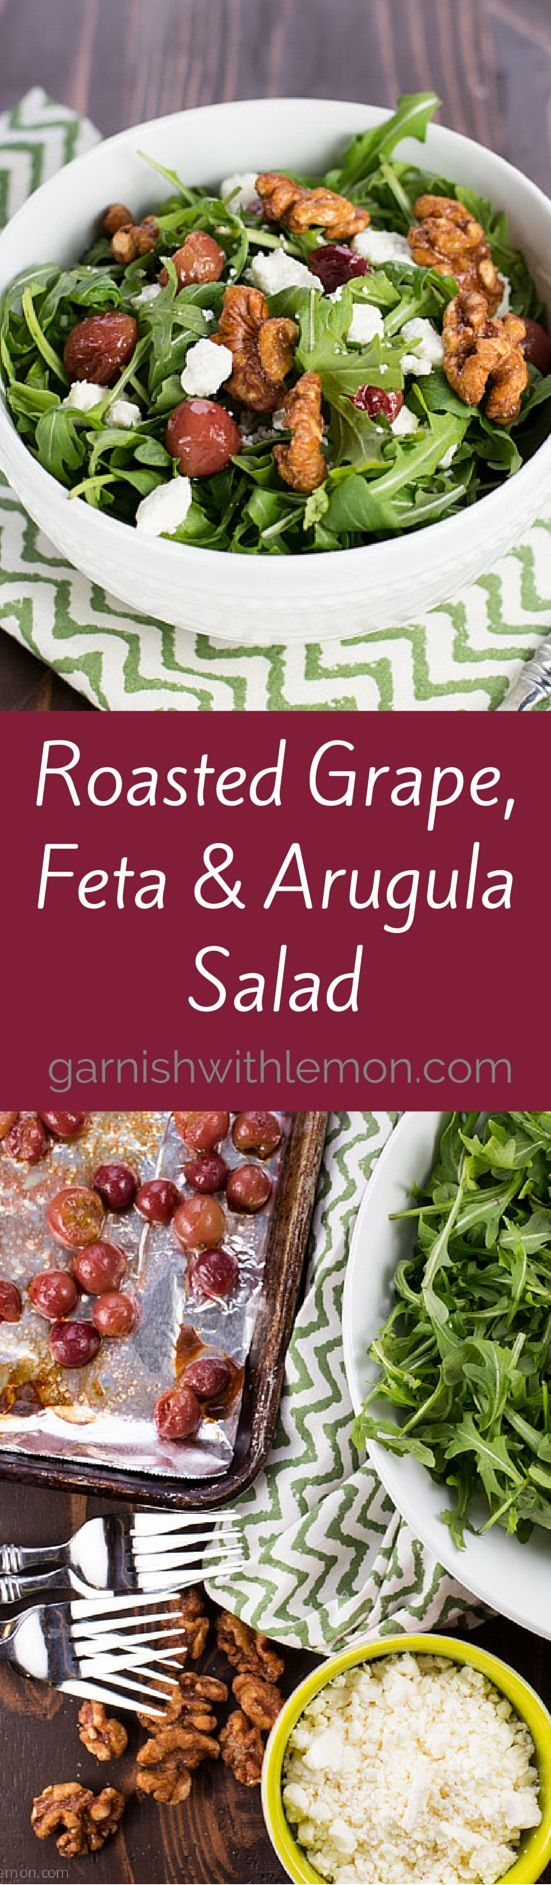 ... Healthy Eats on Pinterest | Strawberries, Pecans and Asparagus salad